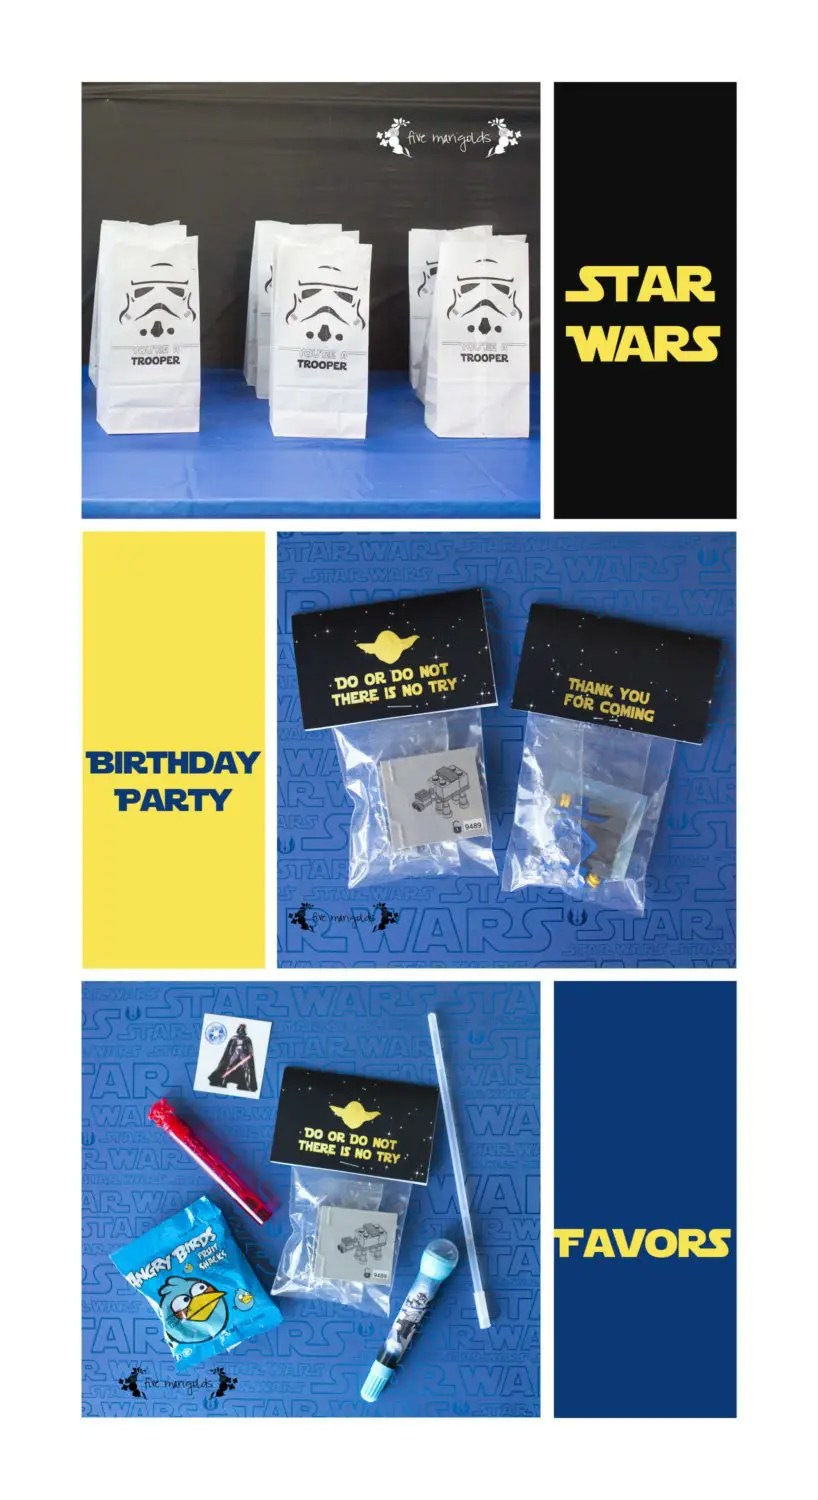 Star Wars Lego Birthday Party Favor Bags | www.fivemarigolds.com